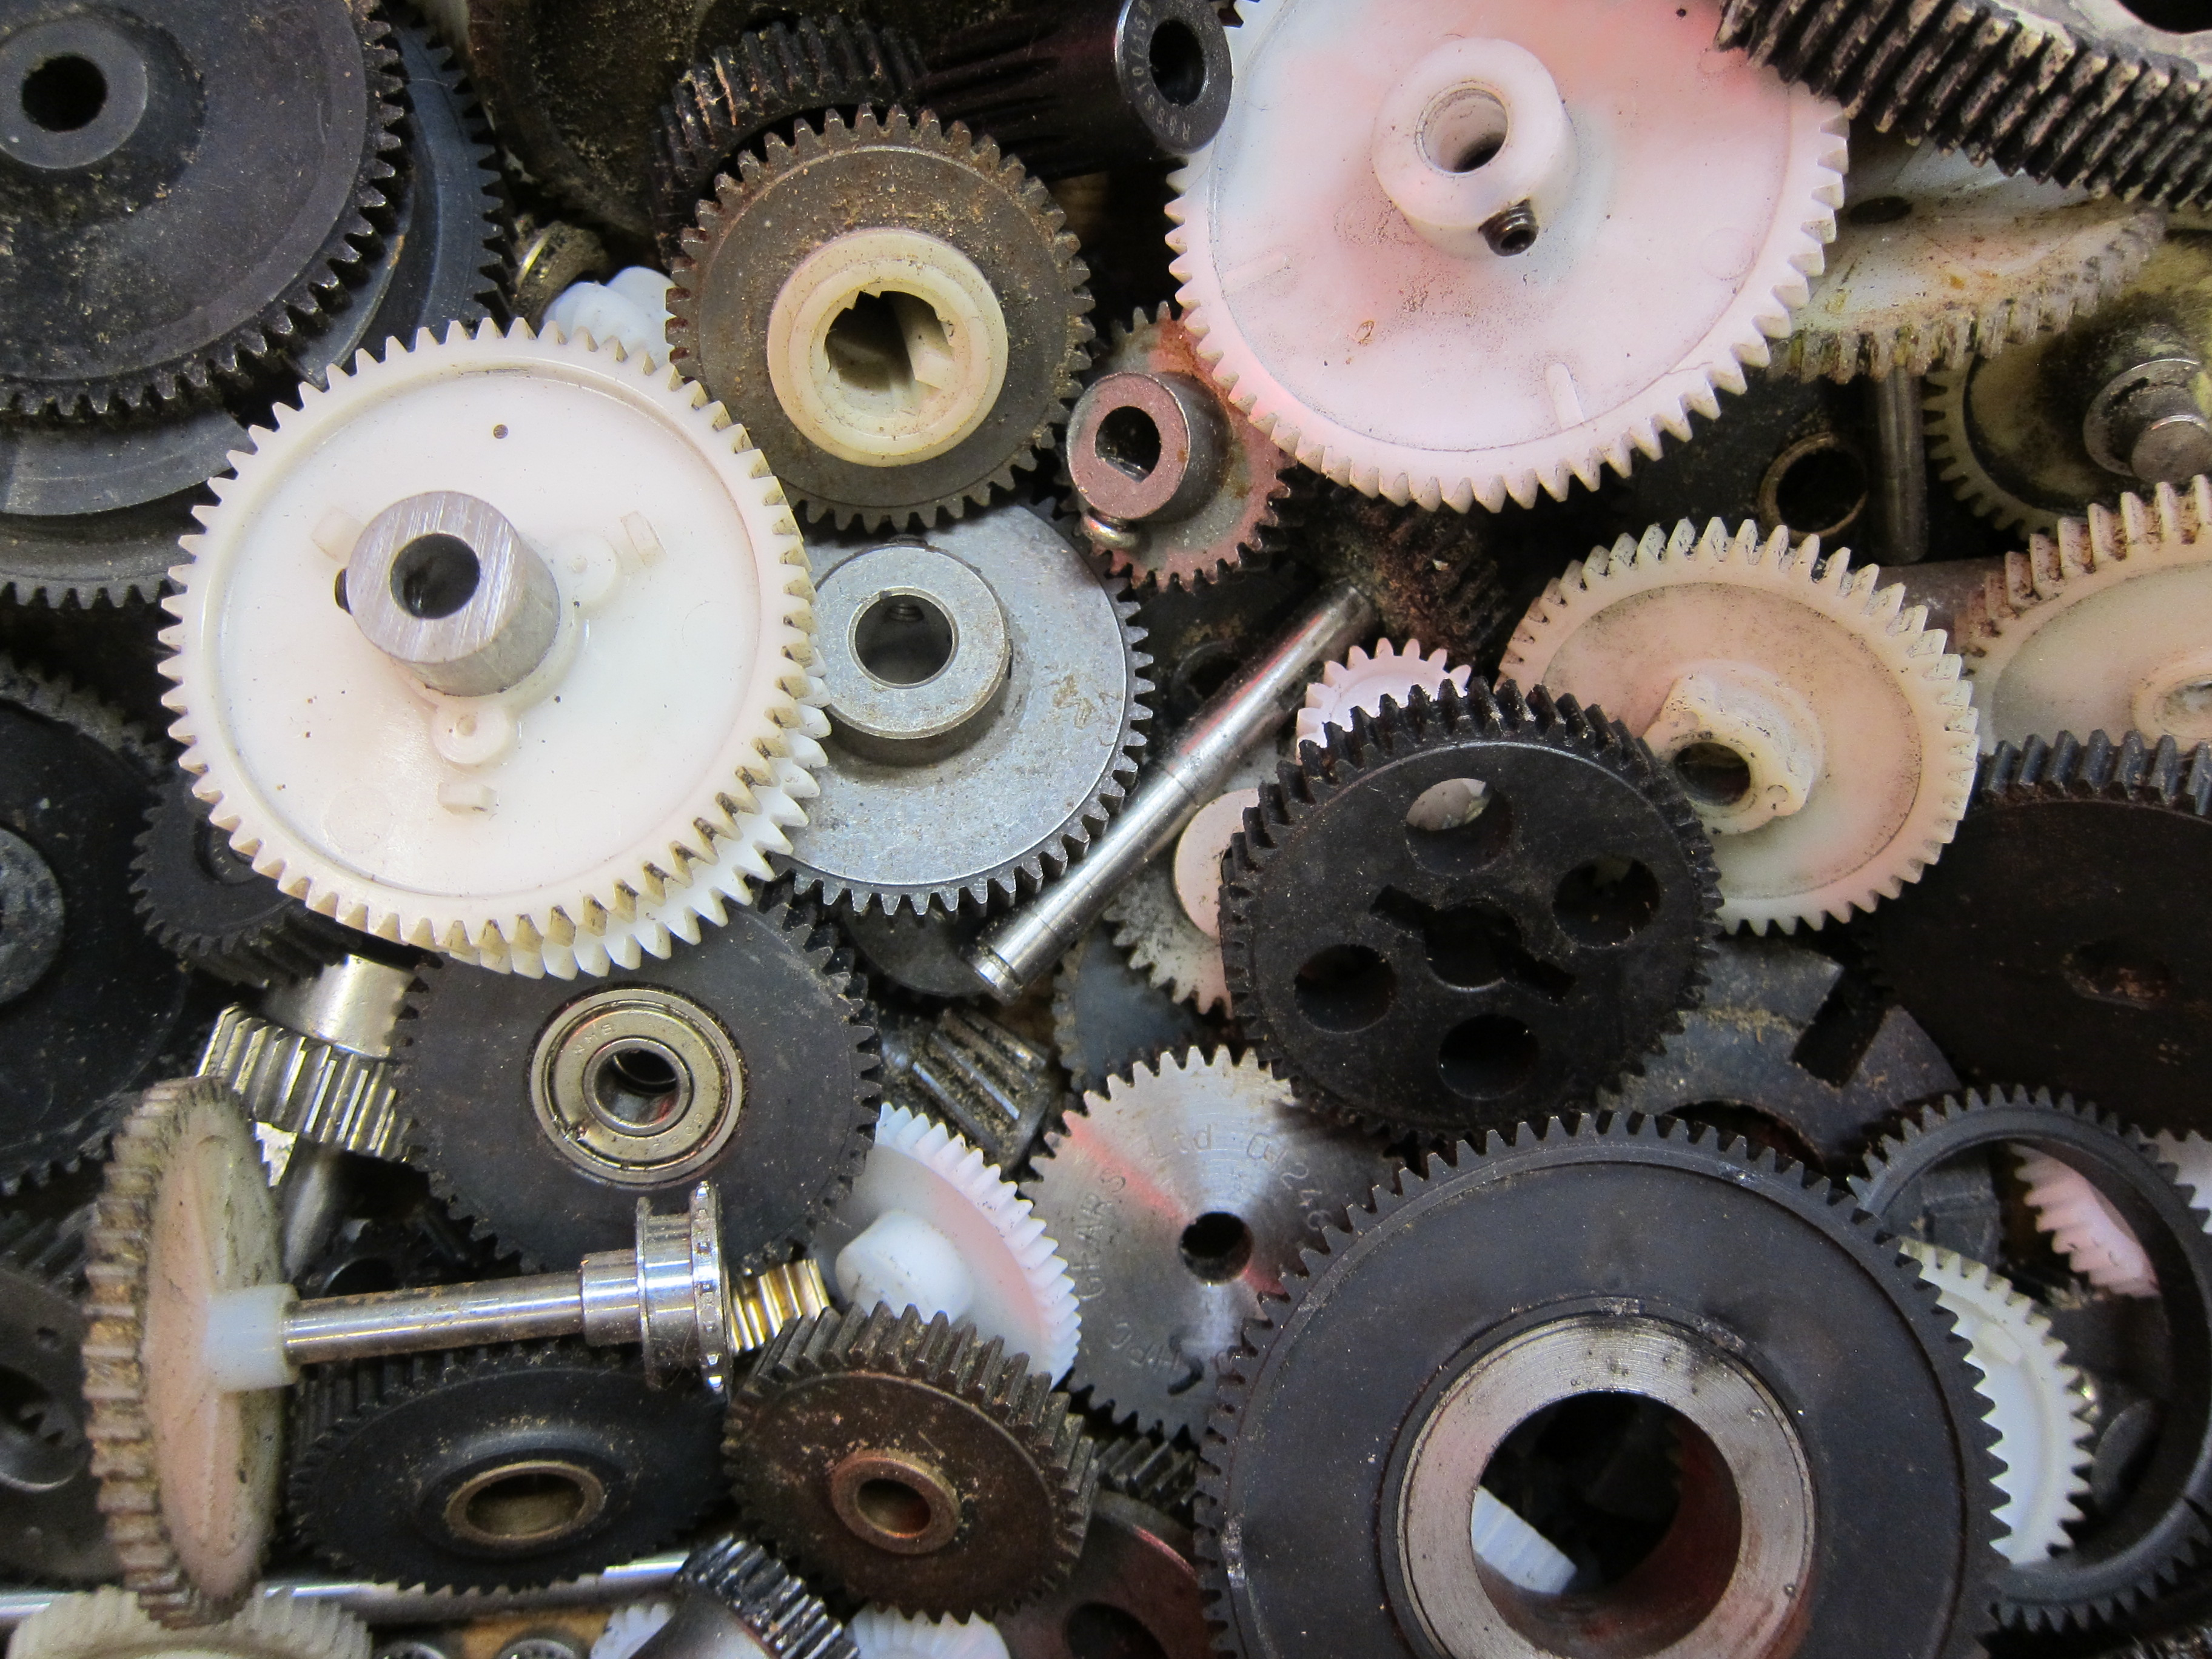 A Mechanical Engineer's Quick Tips for Using Gears